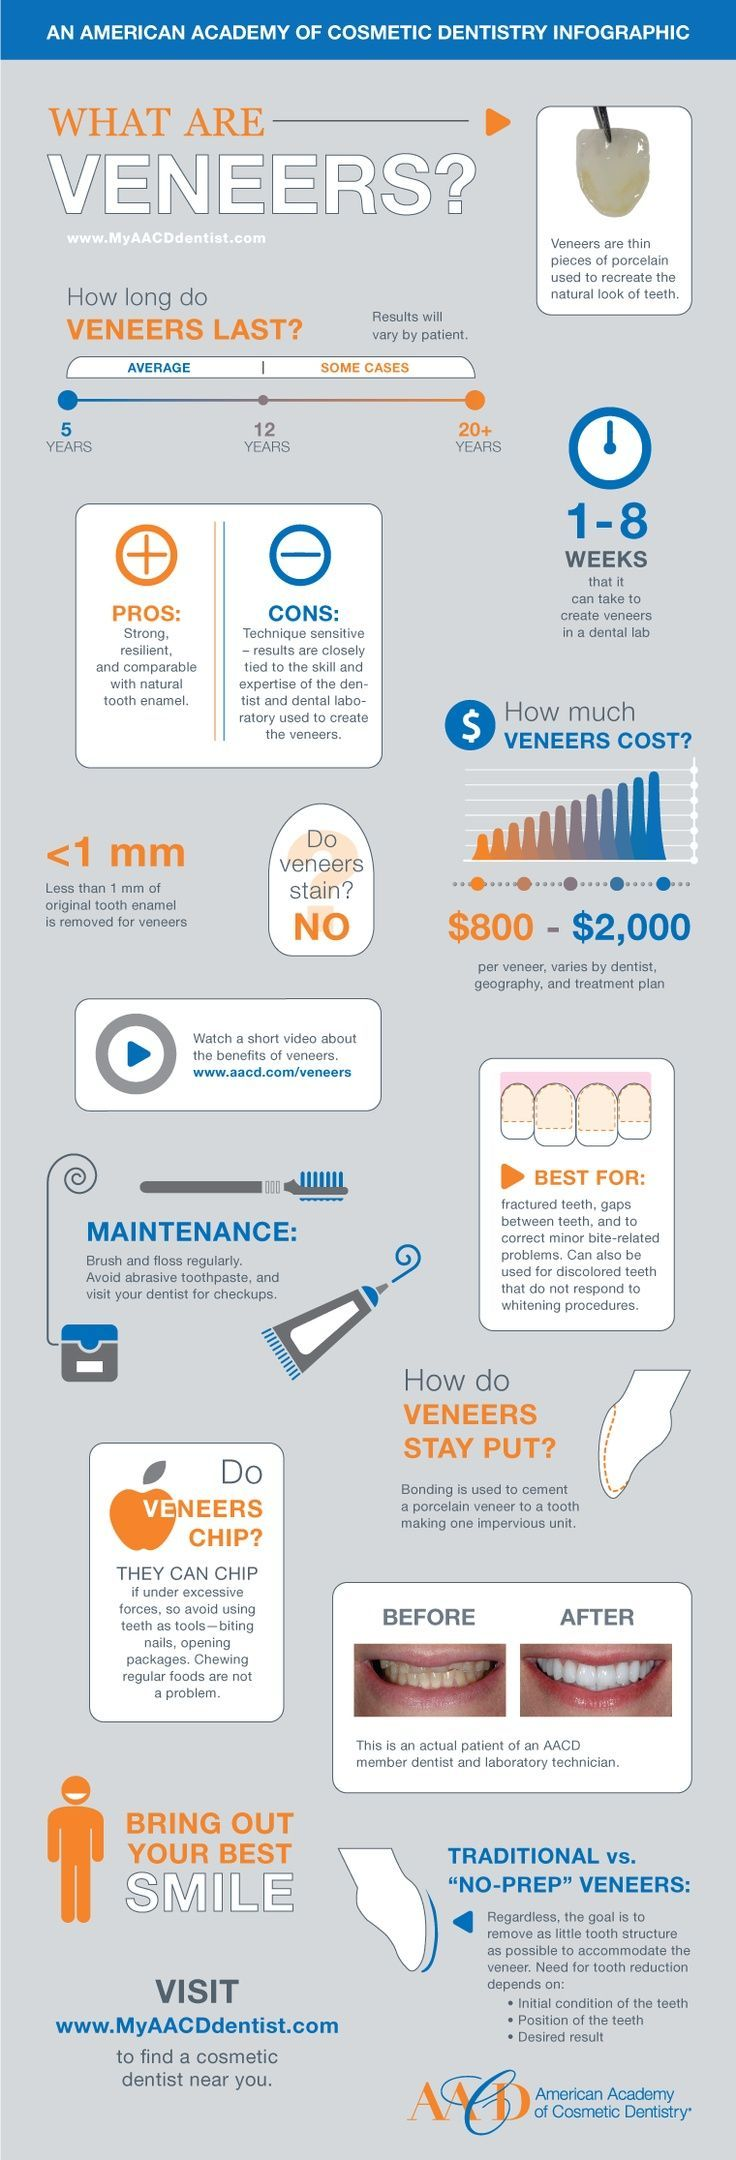 Great Infographic from the American Academy of Cosmetic